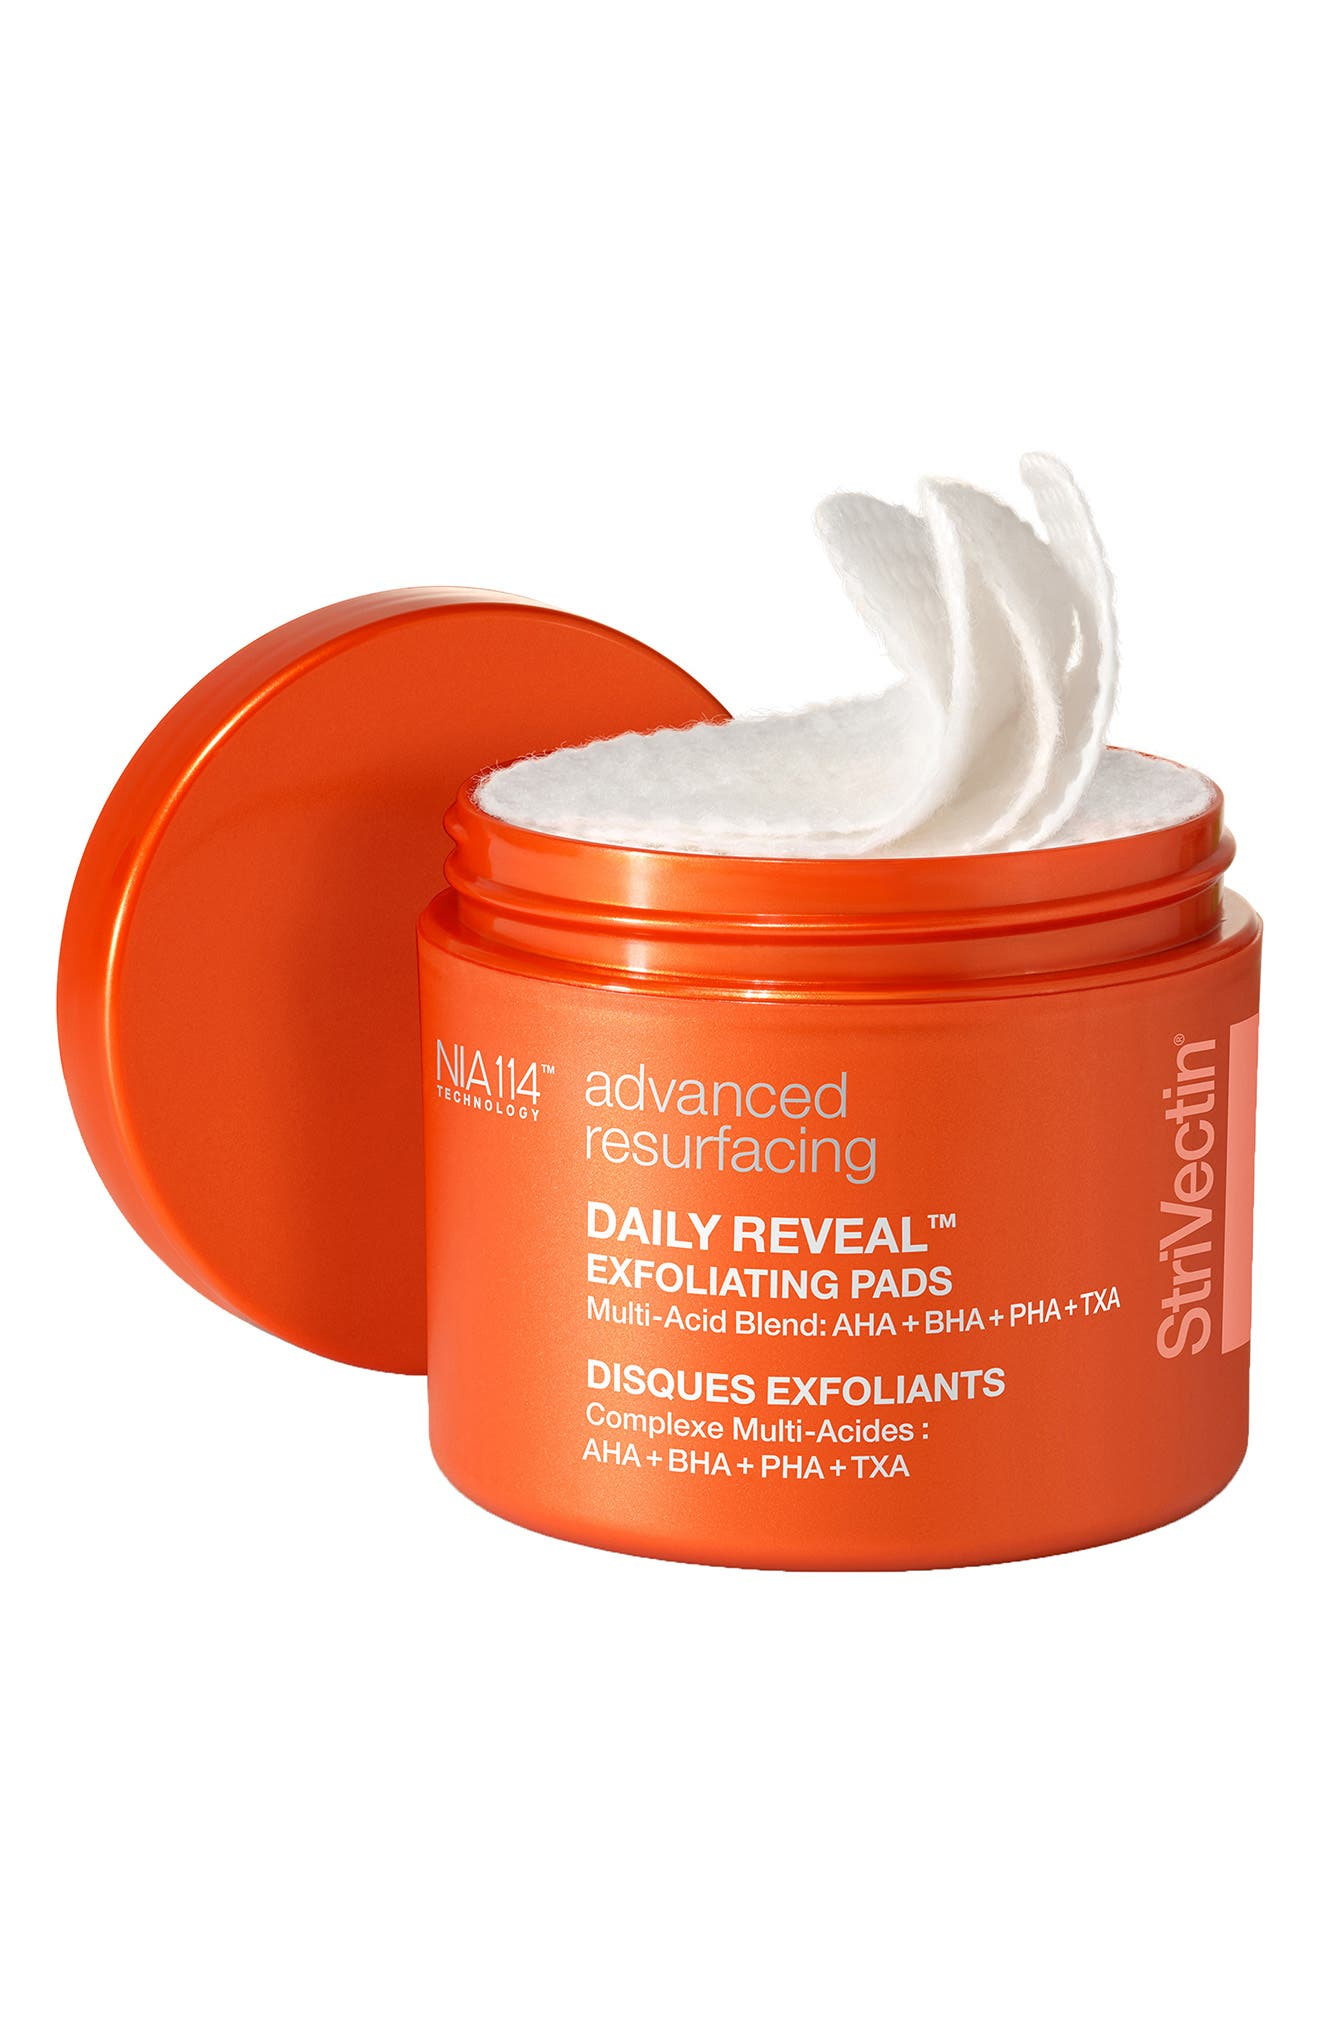 Daily Reveal™ Exfoliating Pads   Nordstrom